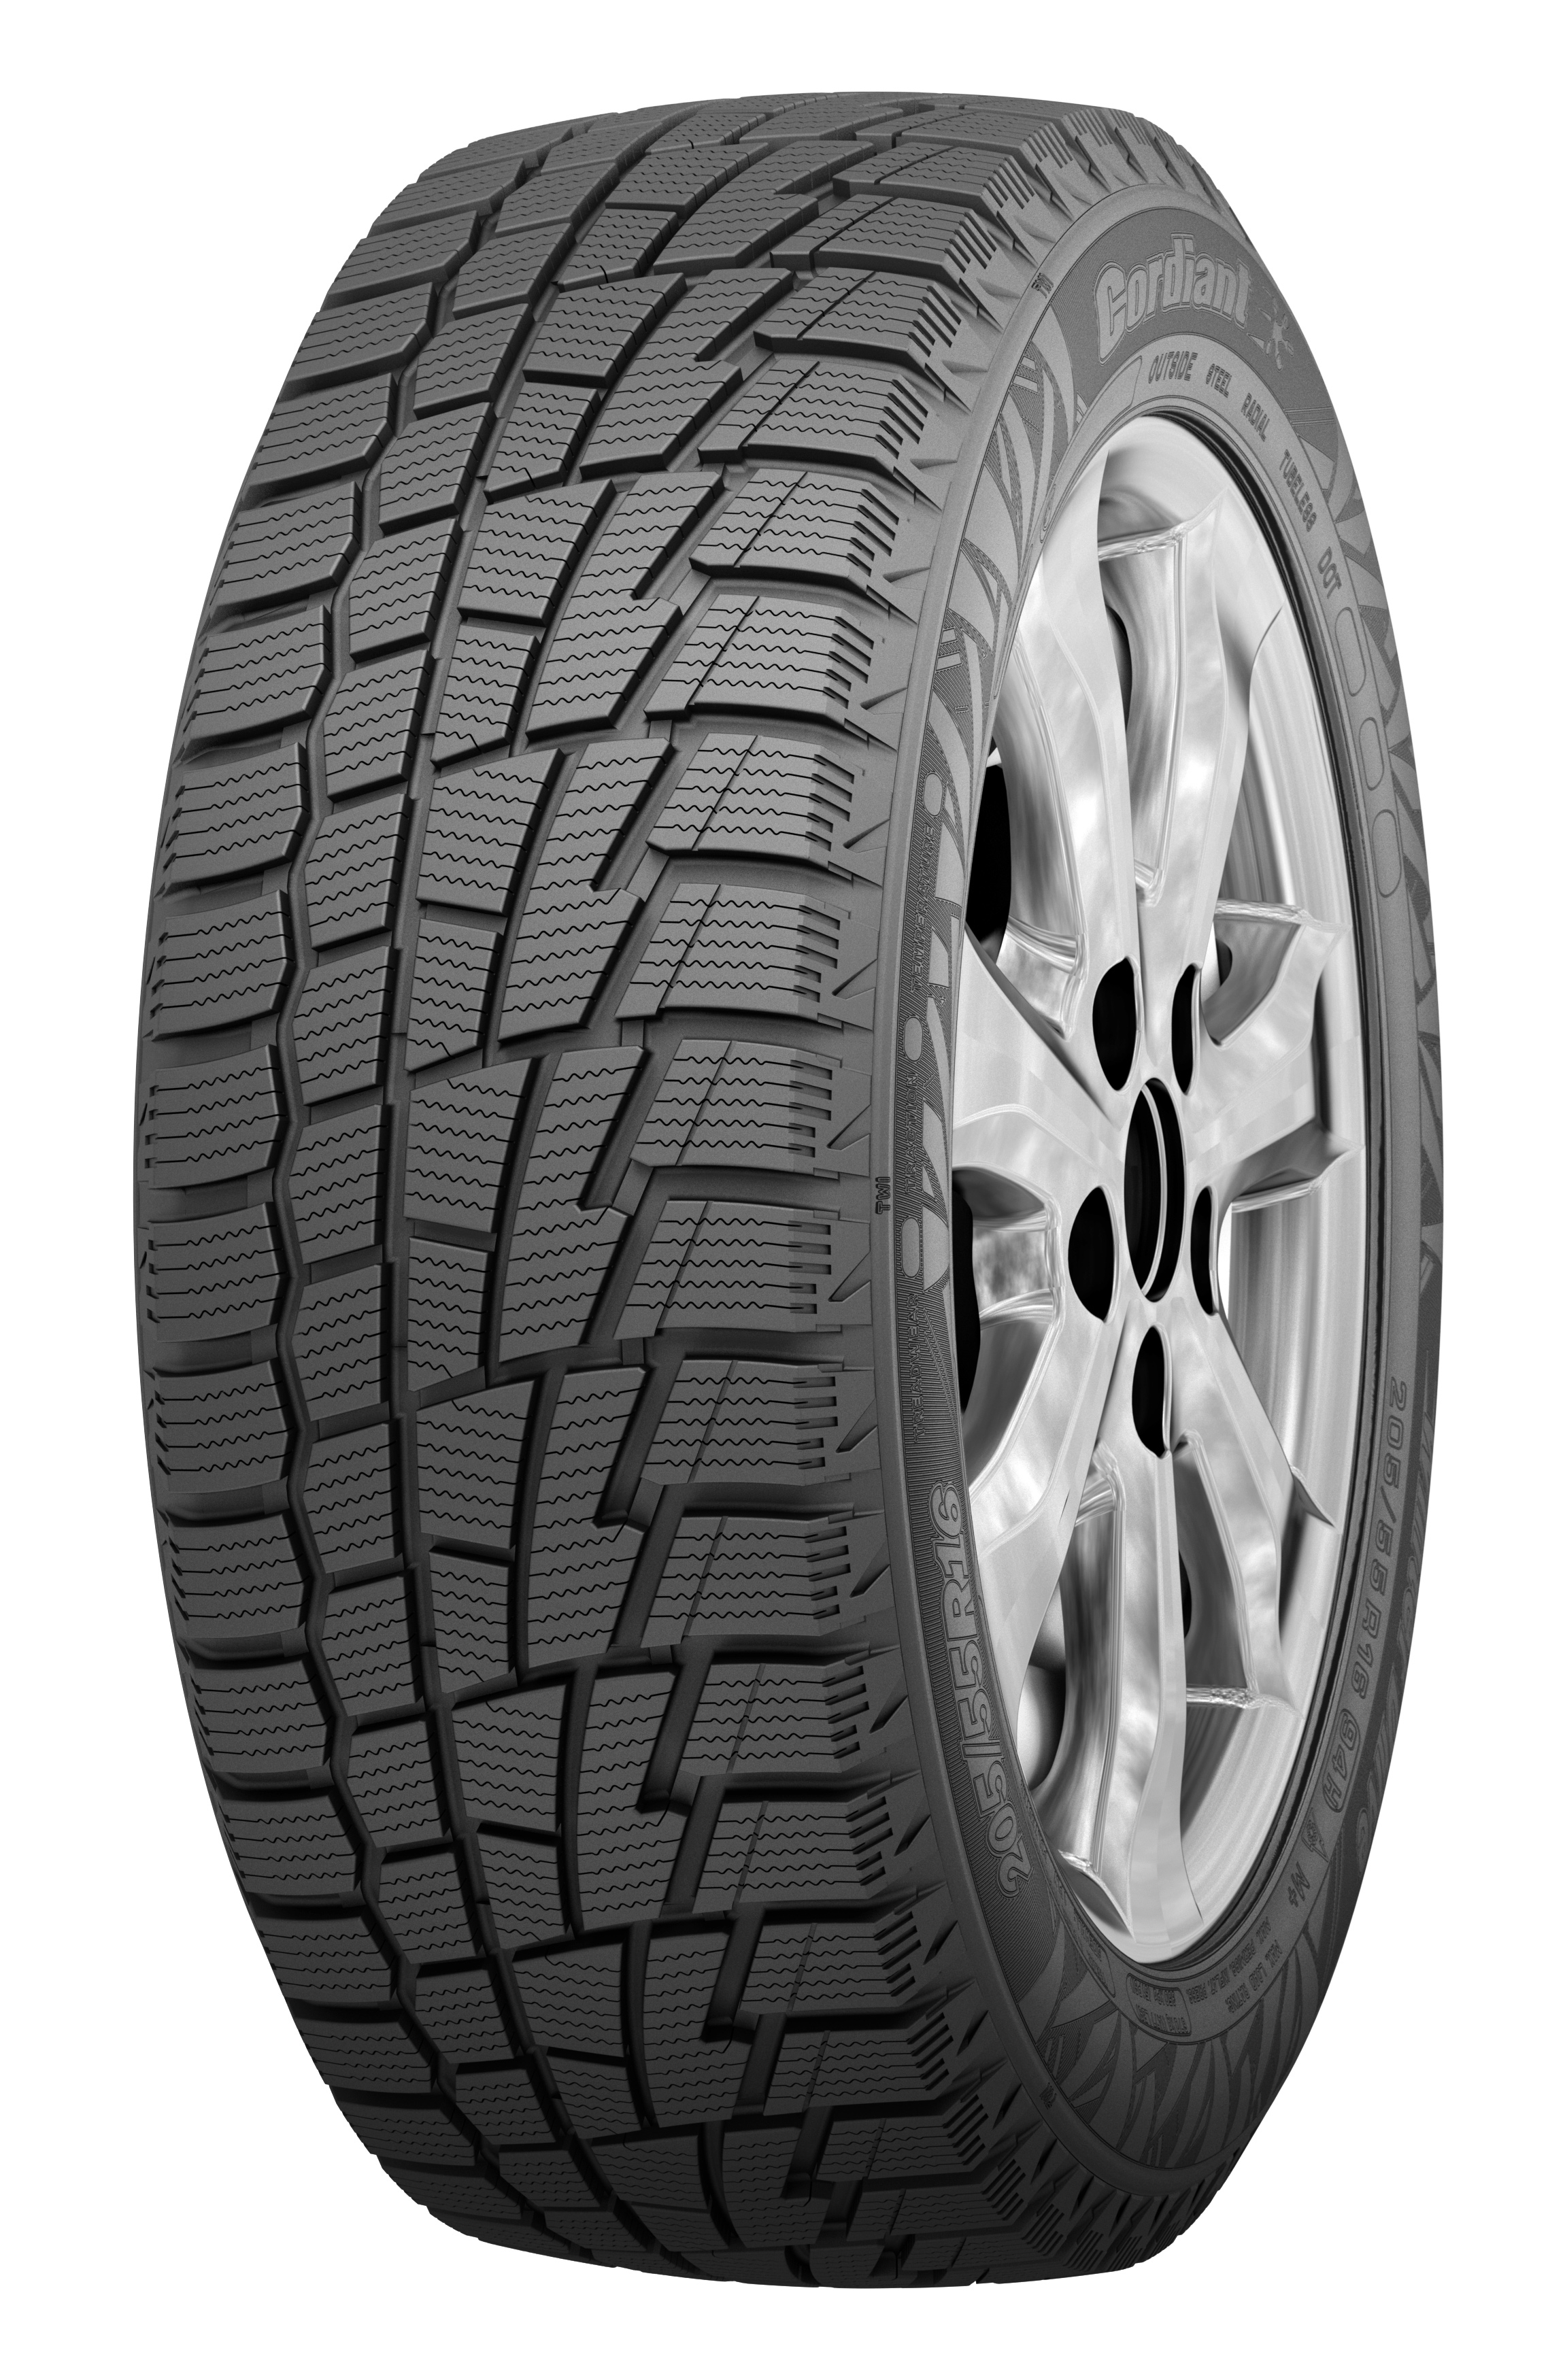 Зимняя шина CORDIANT Winter Drive 205/65 R15 94T